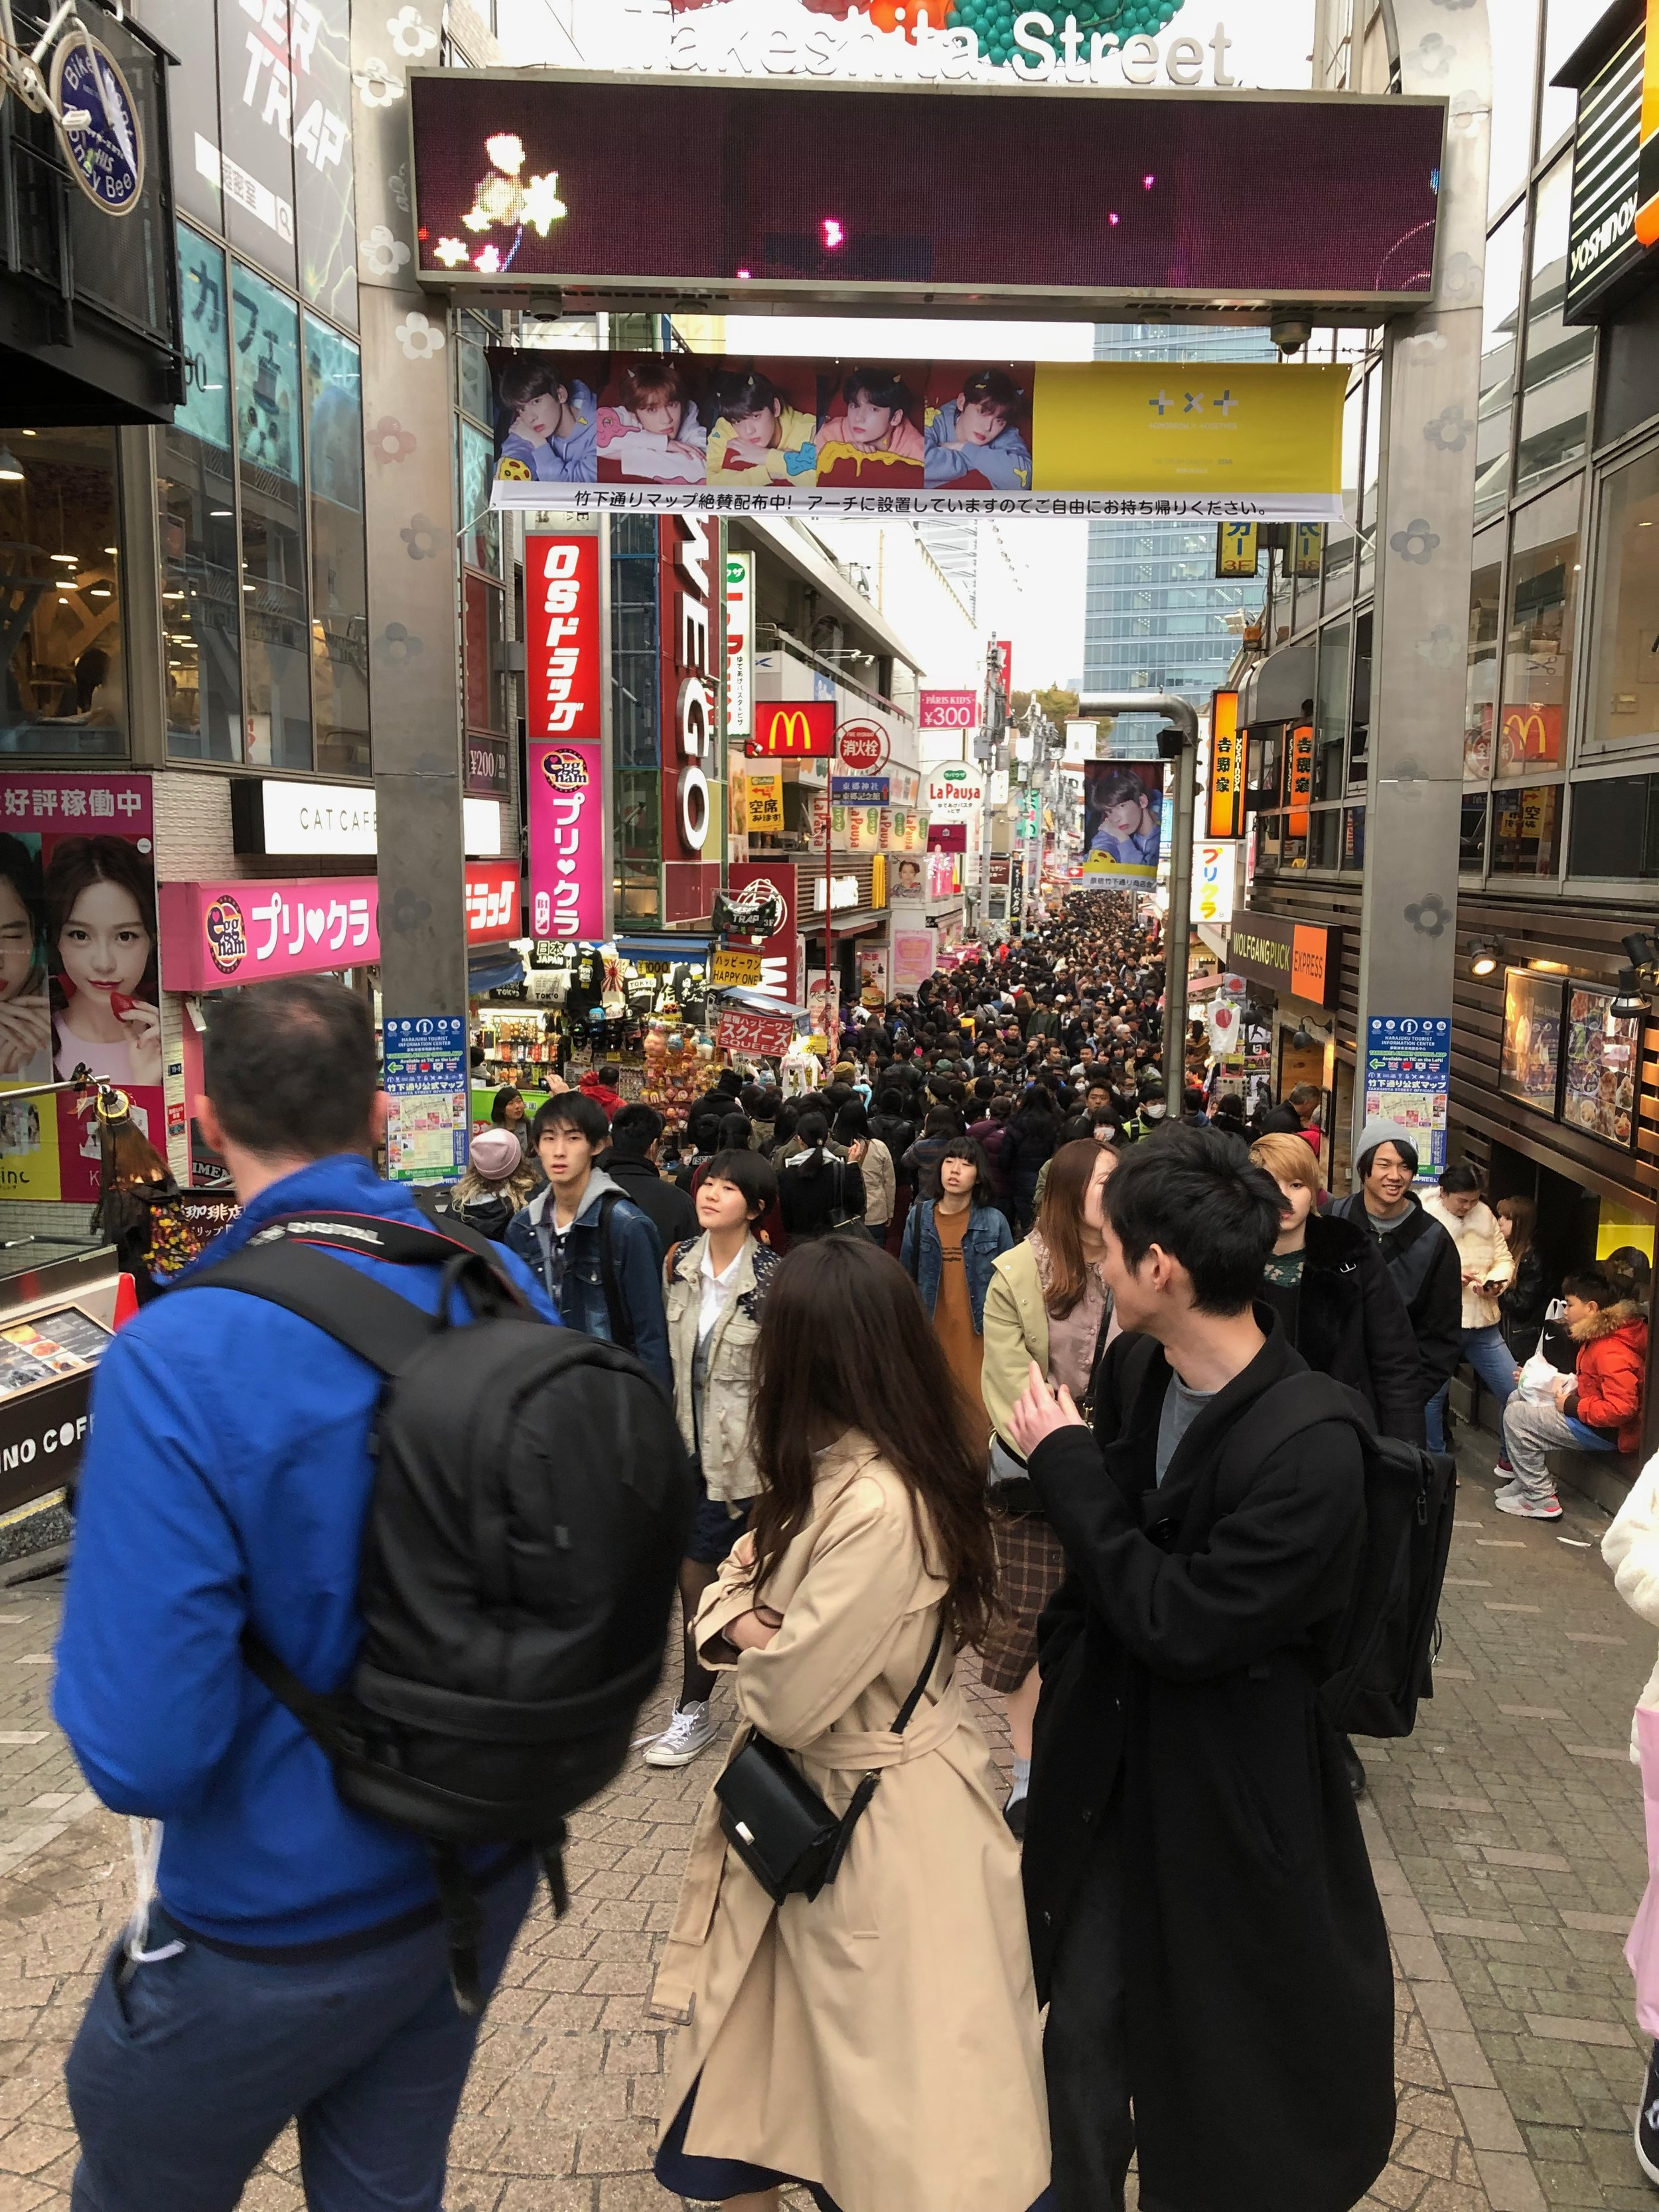 Ameyoko shopping district, formerly the black market area of Tokyo. Noodle shops abound!